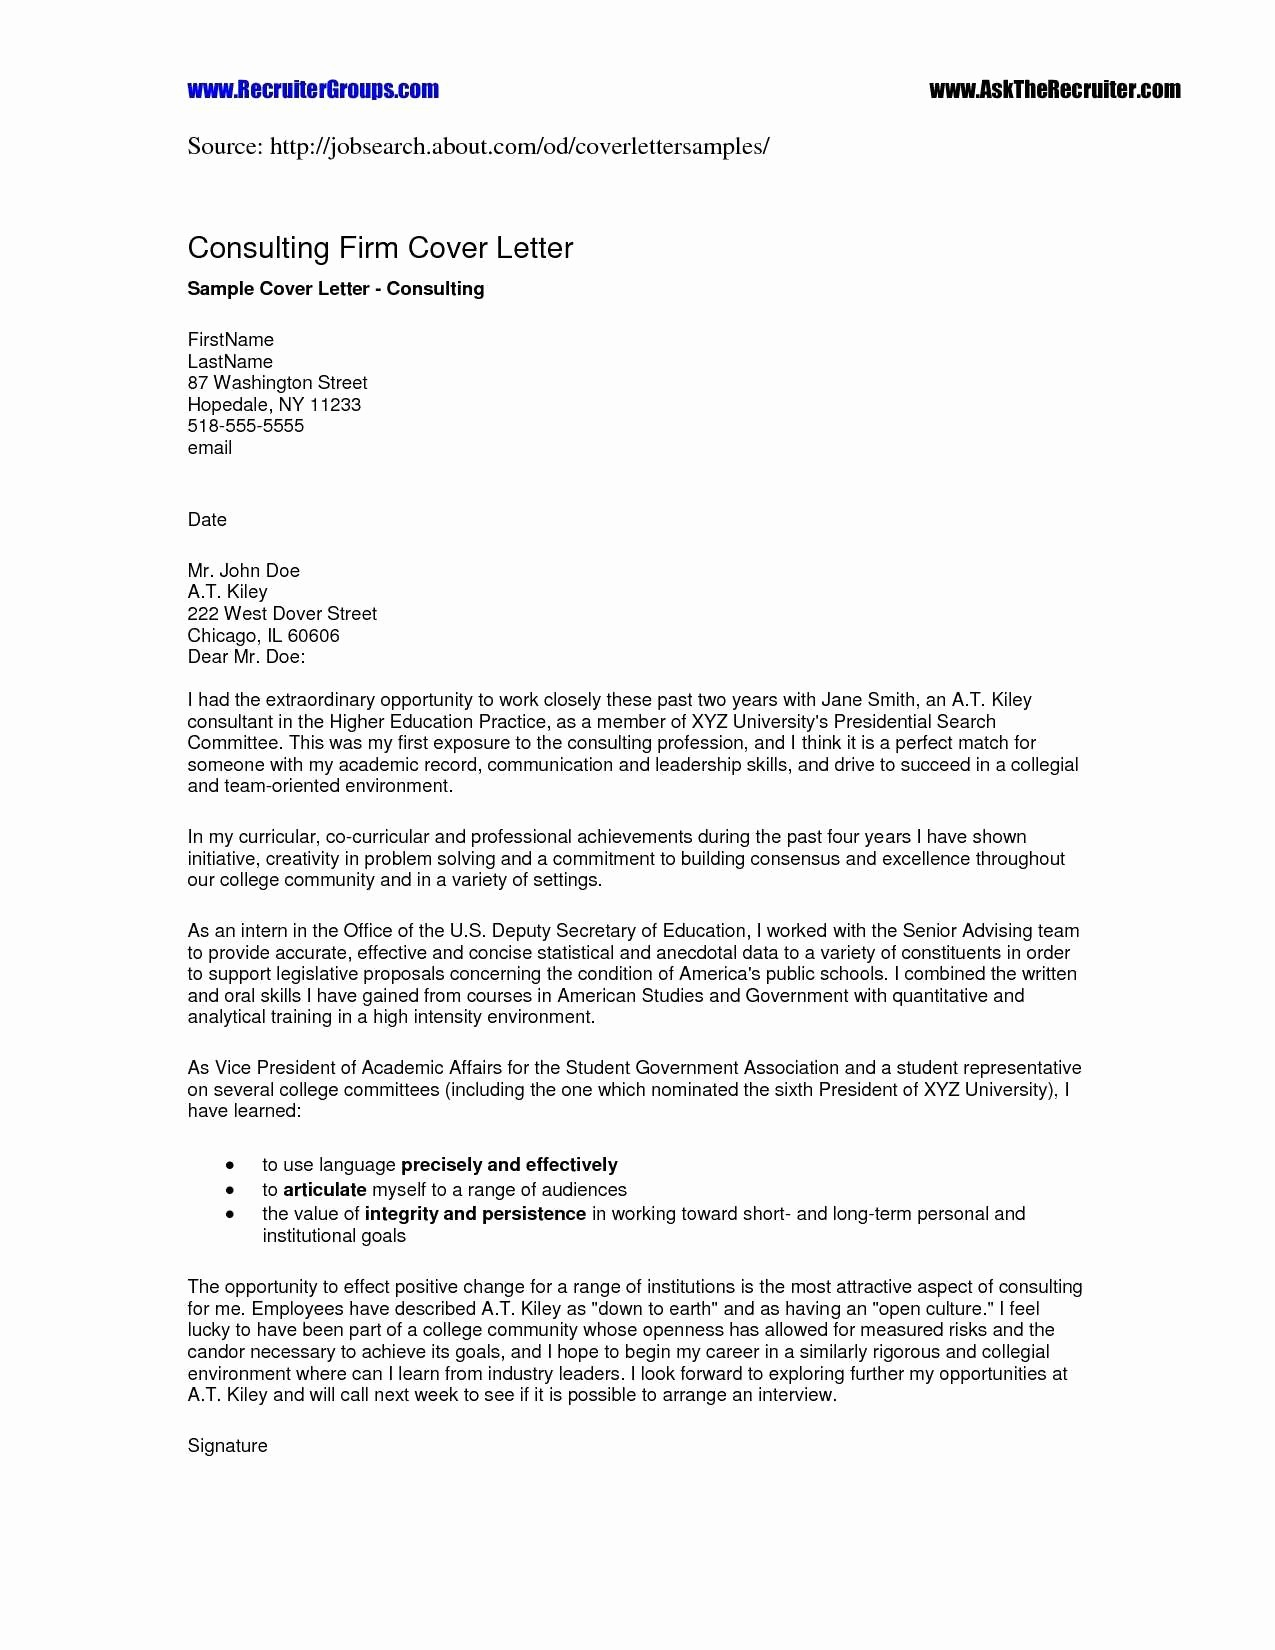 General Power Of attorney Letter Template - Business Power attorney Template Fresh General Power attorney